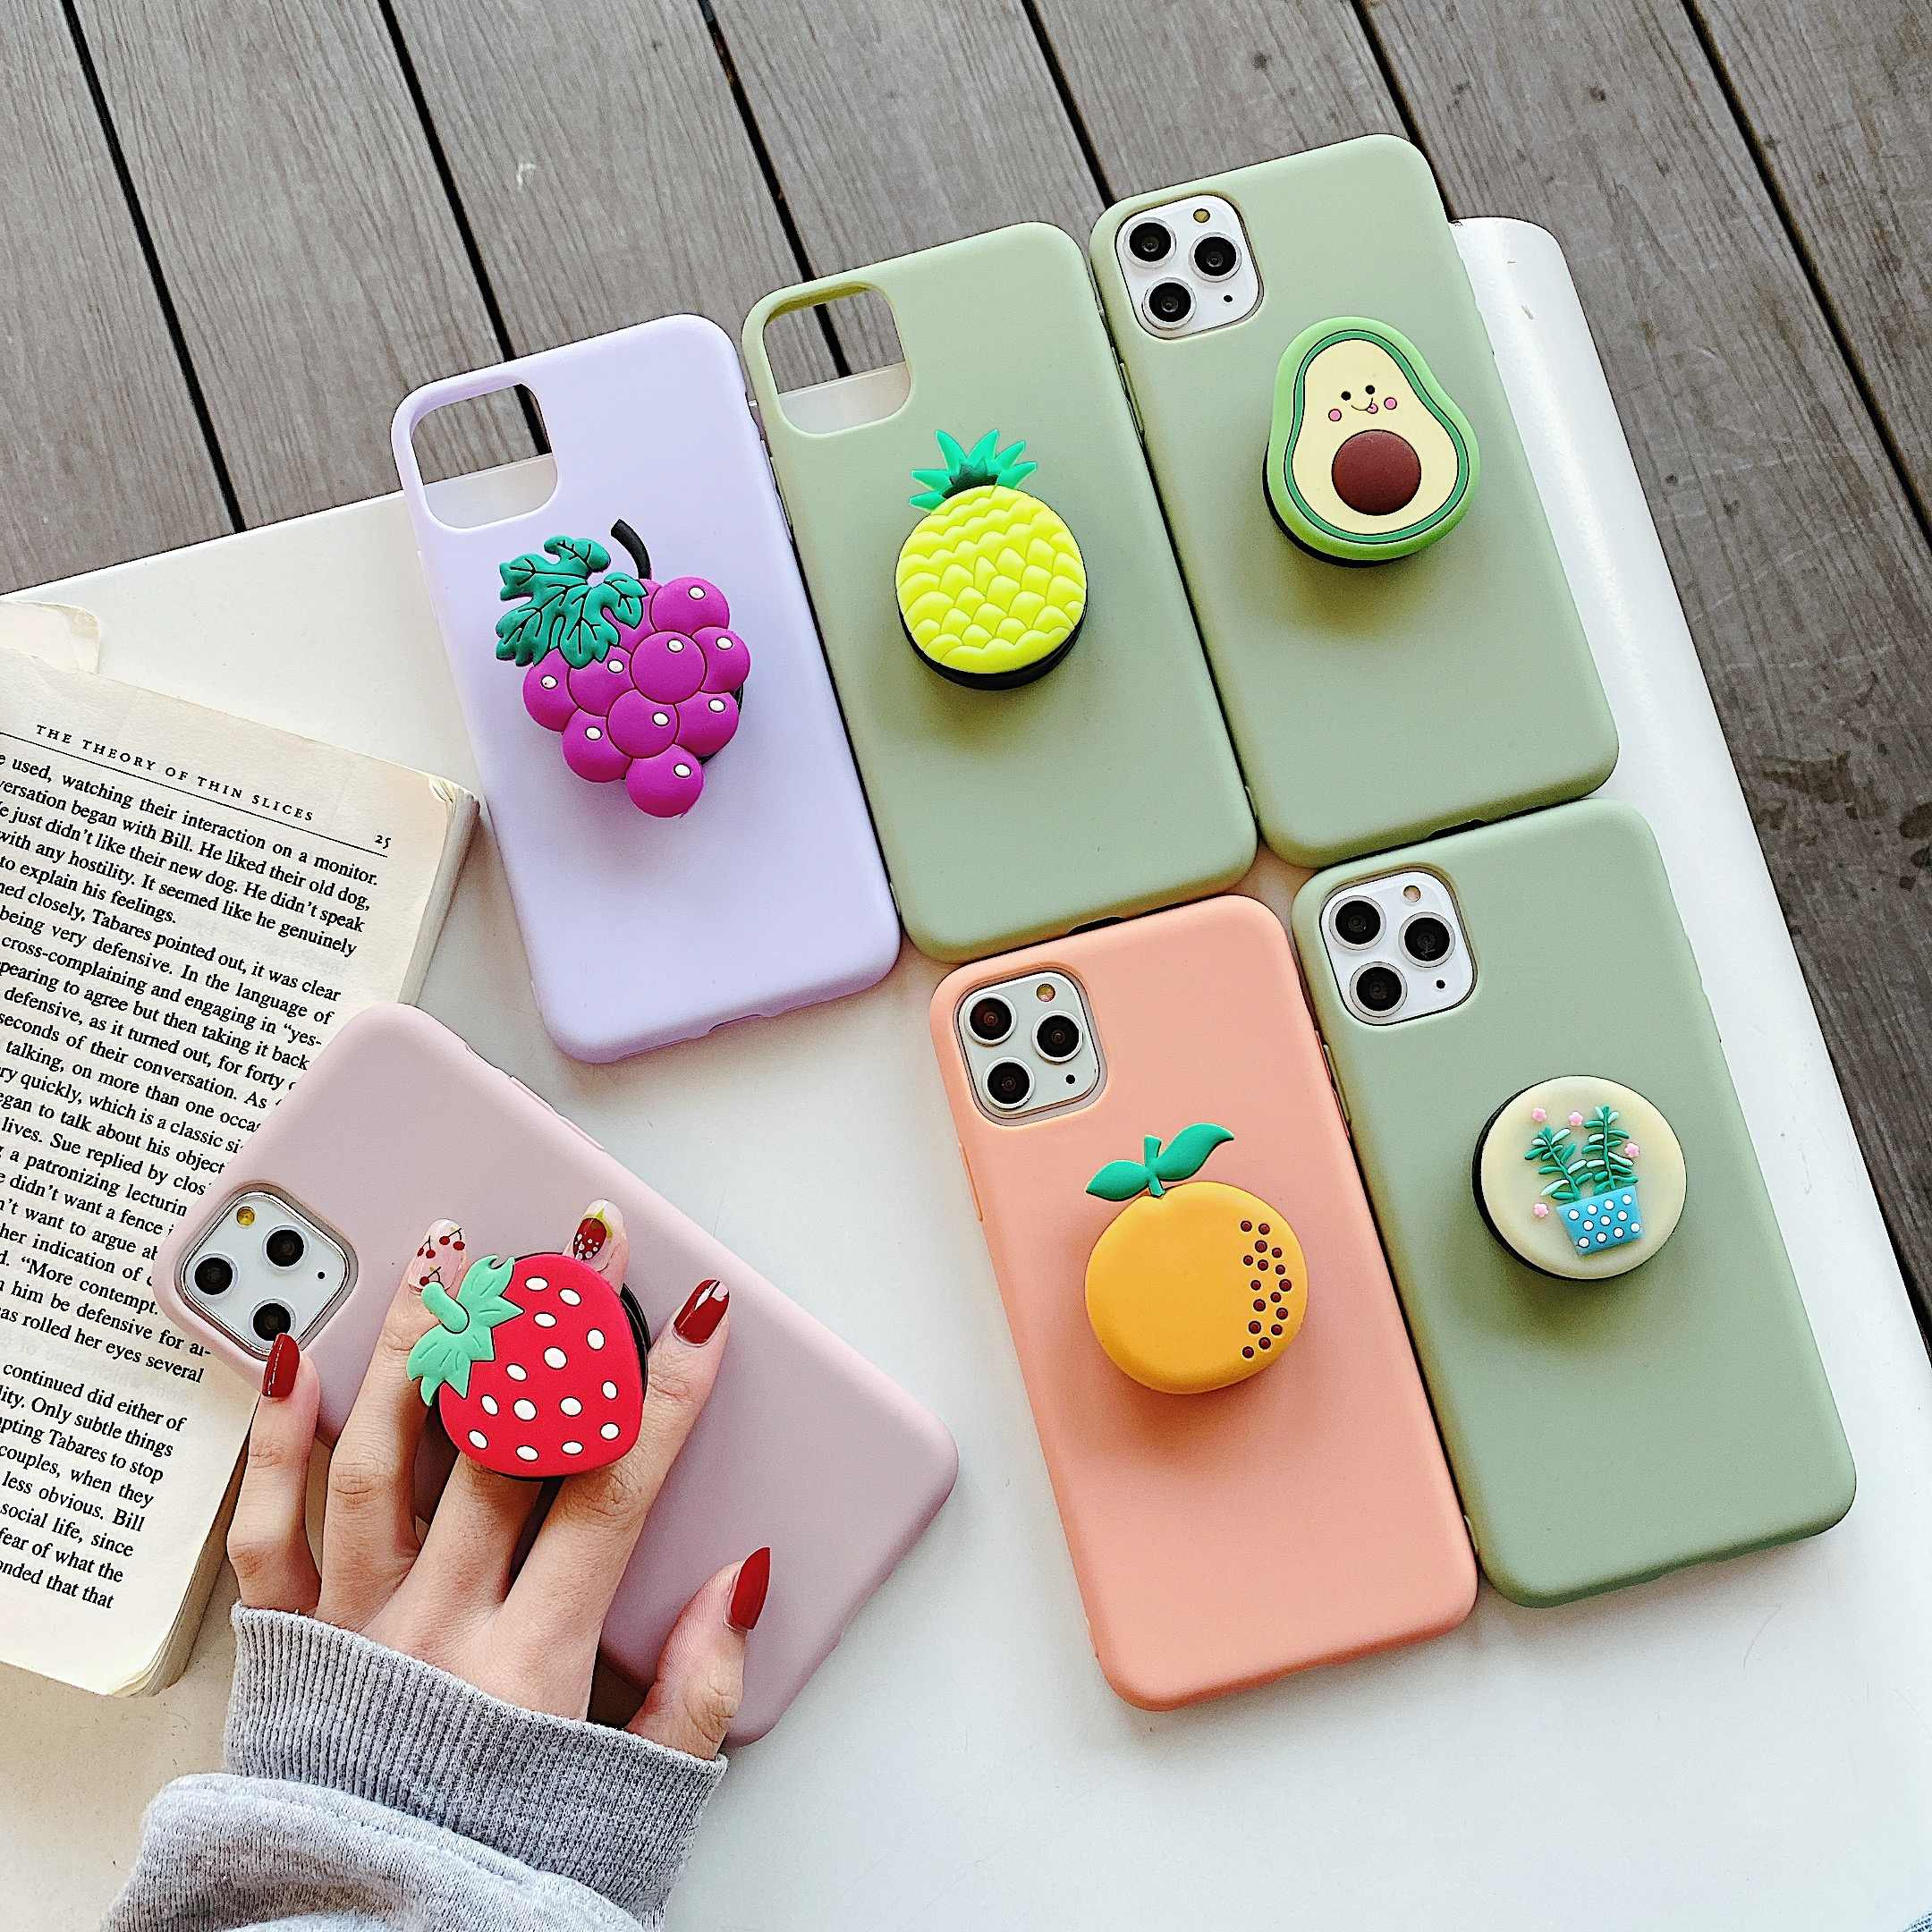 3D Cartoon Fruit avocado holder Soft phone case for iphone X XR XS 11 Pro Max 6 7 8 plus cover for samsung S8 S9 S10 20 Note